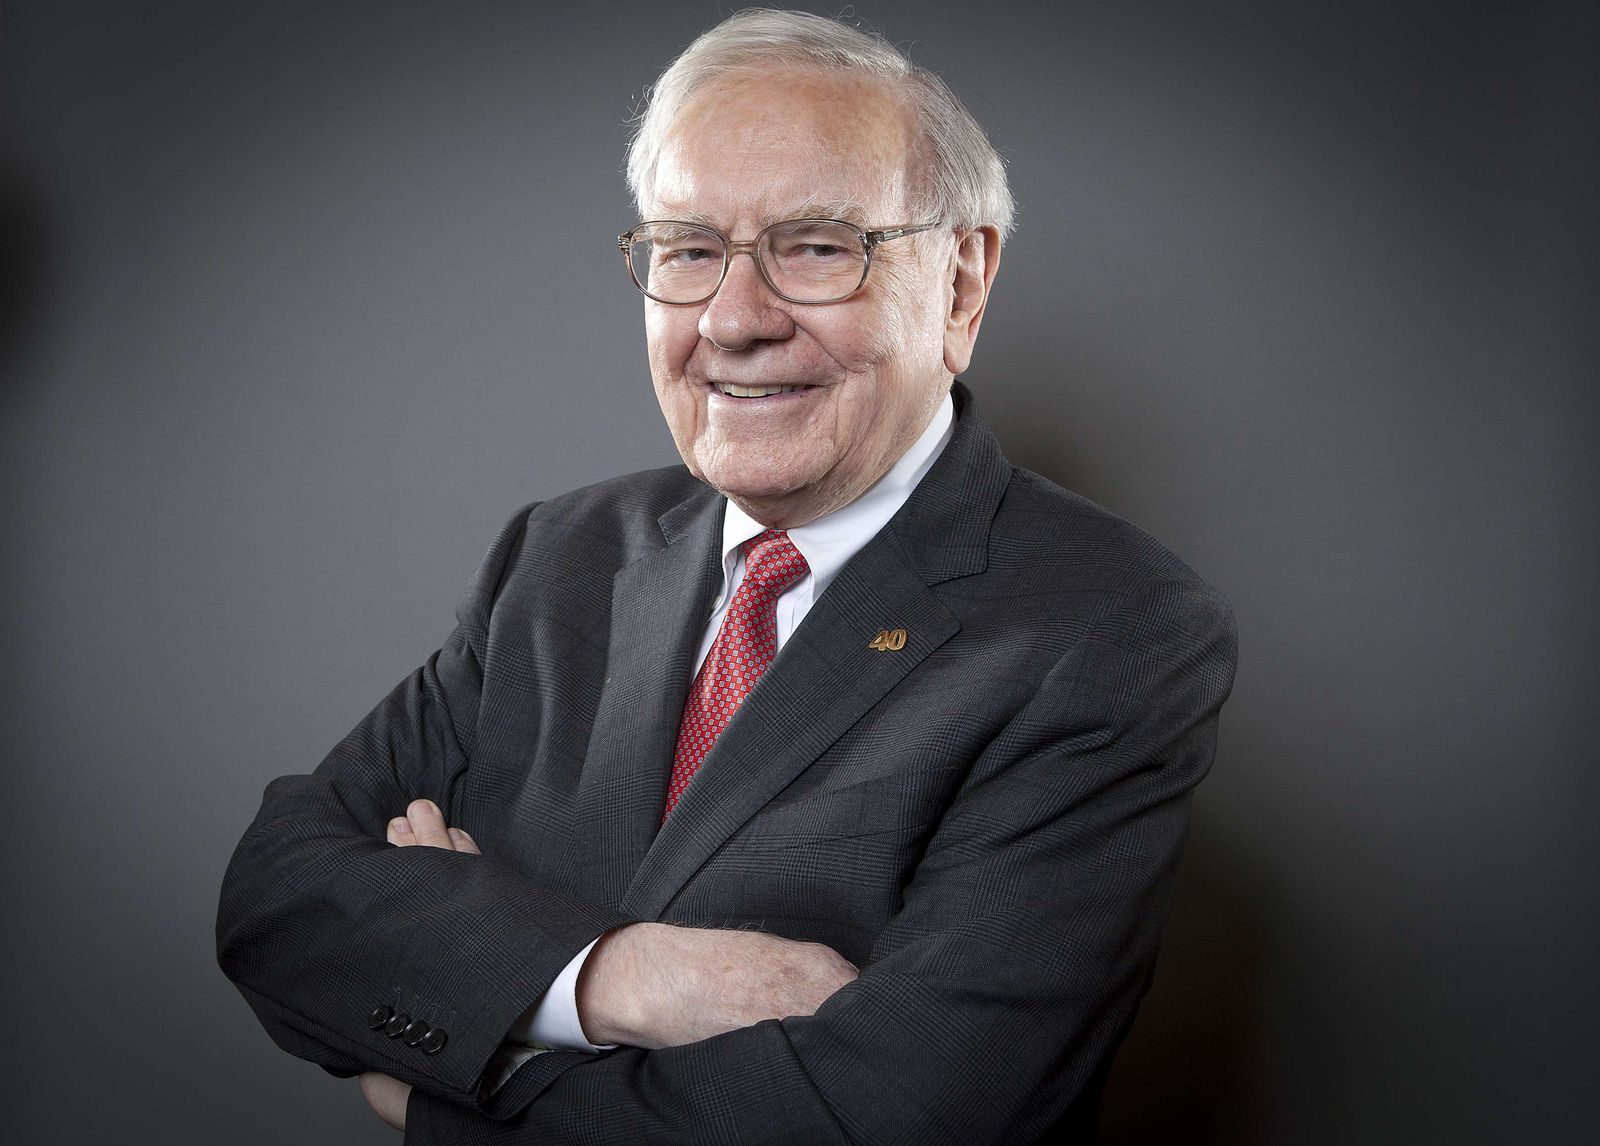 USA Warren Buffett